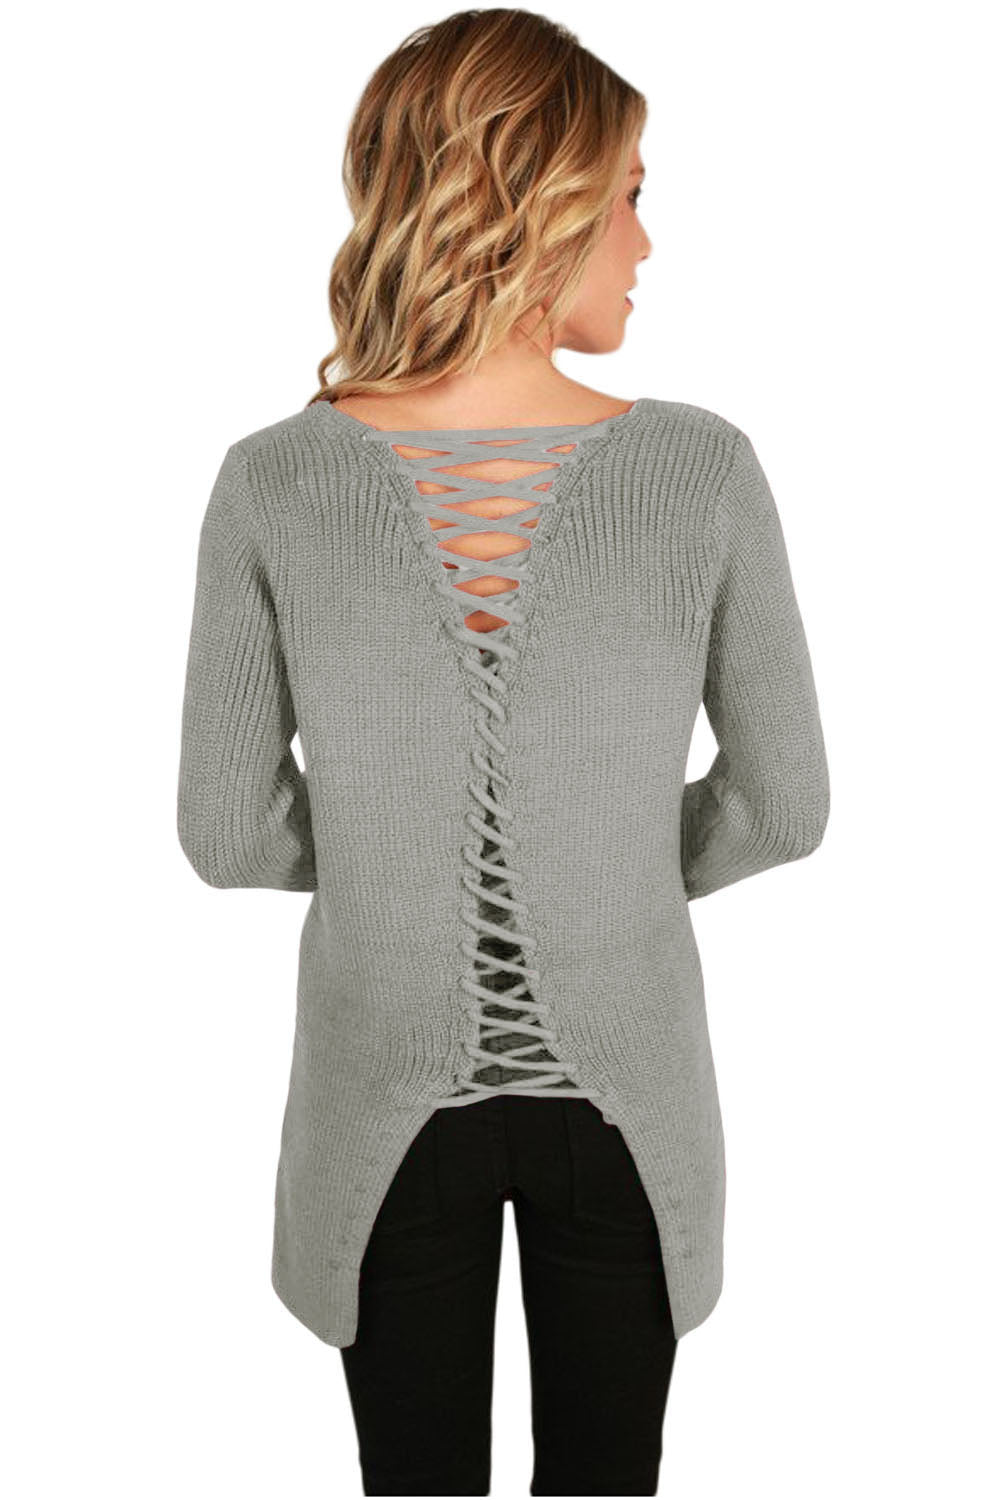 Her Stunning Red Never Look Back Lace Up Stylish Sweater